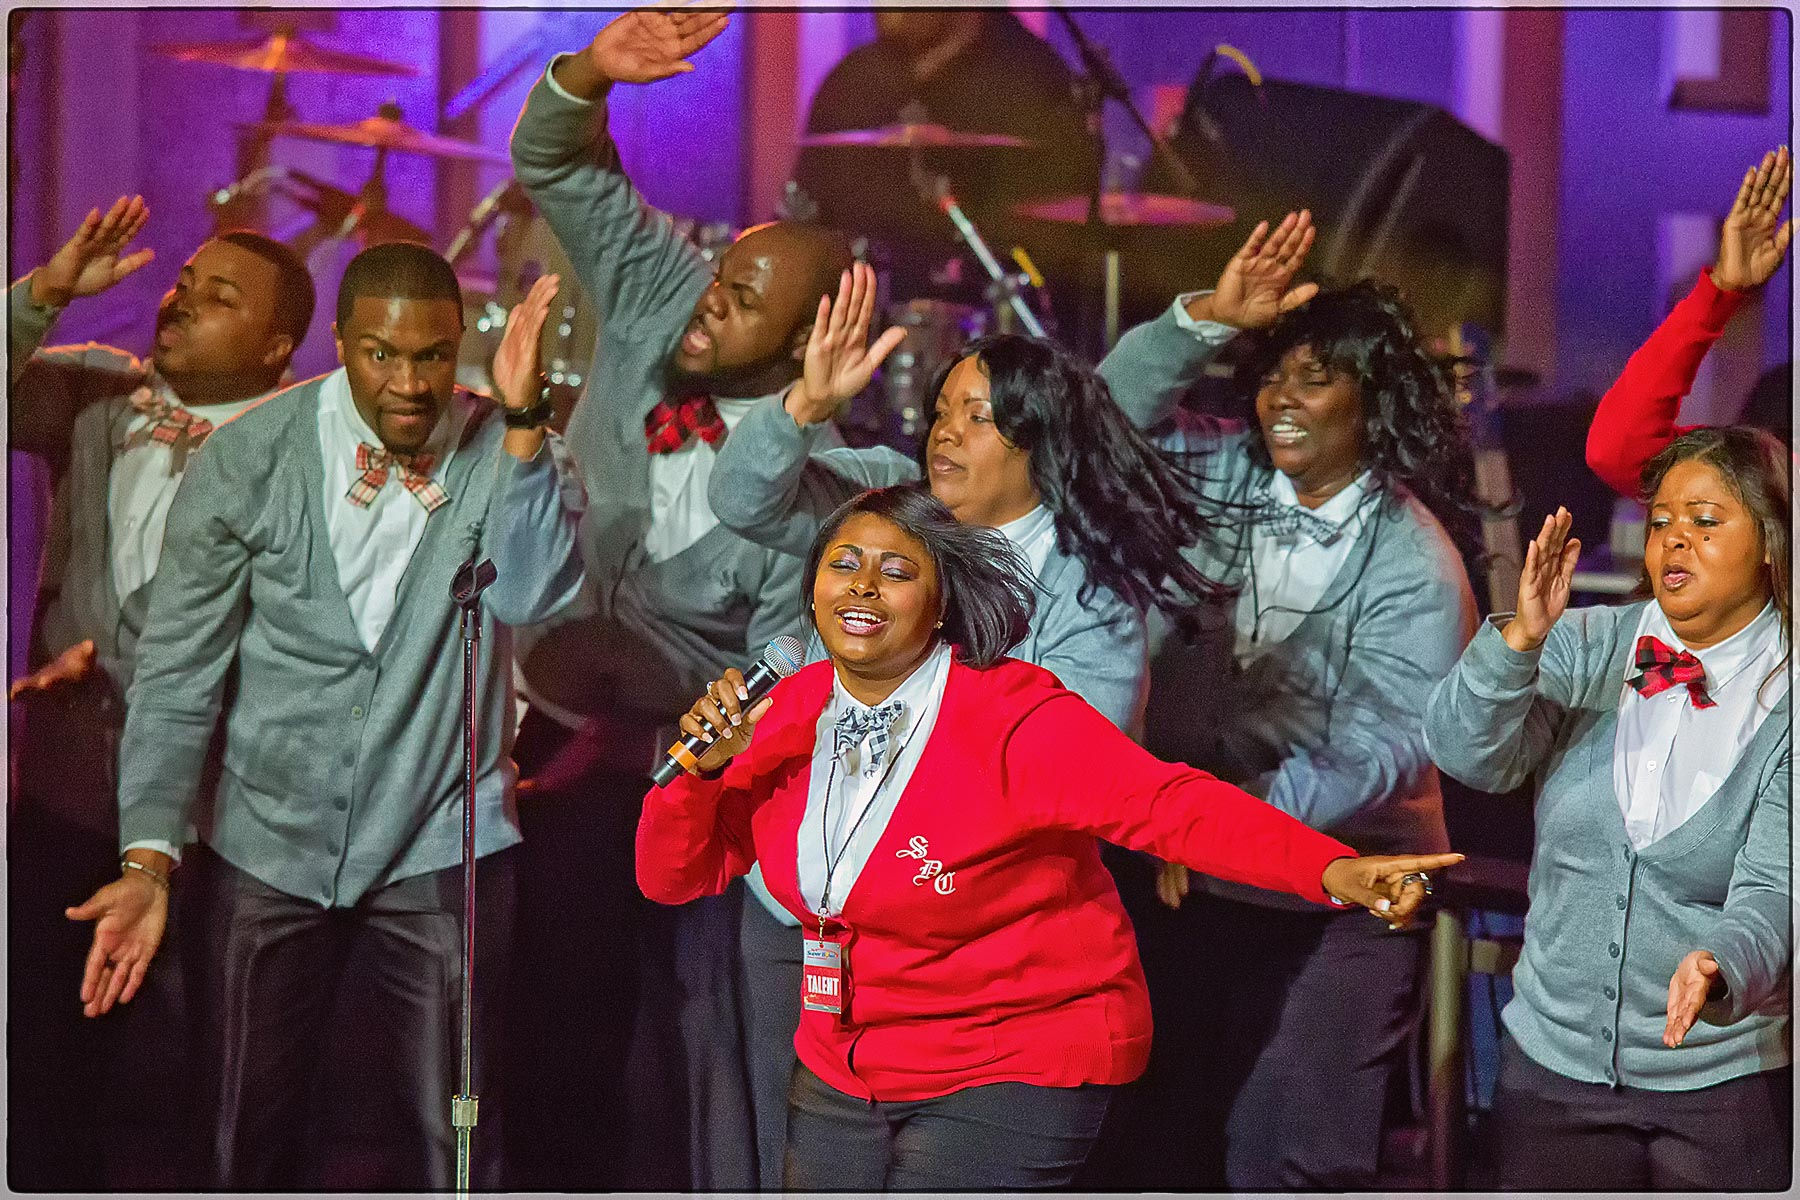 Salvation-Deliverance - at Super Bowl Gospel Explosion